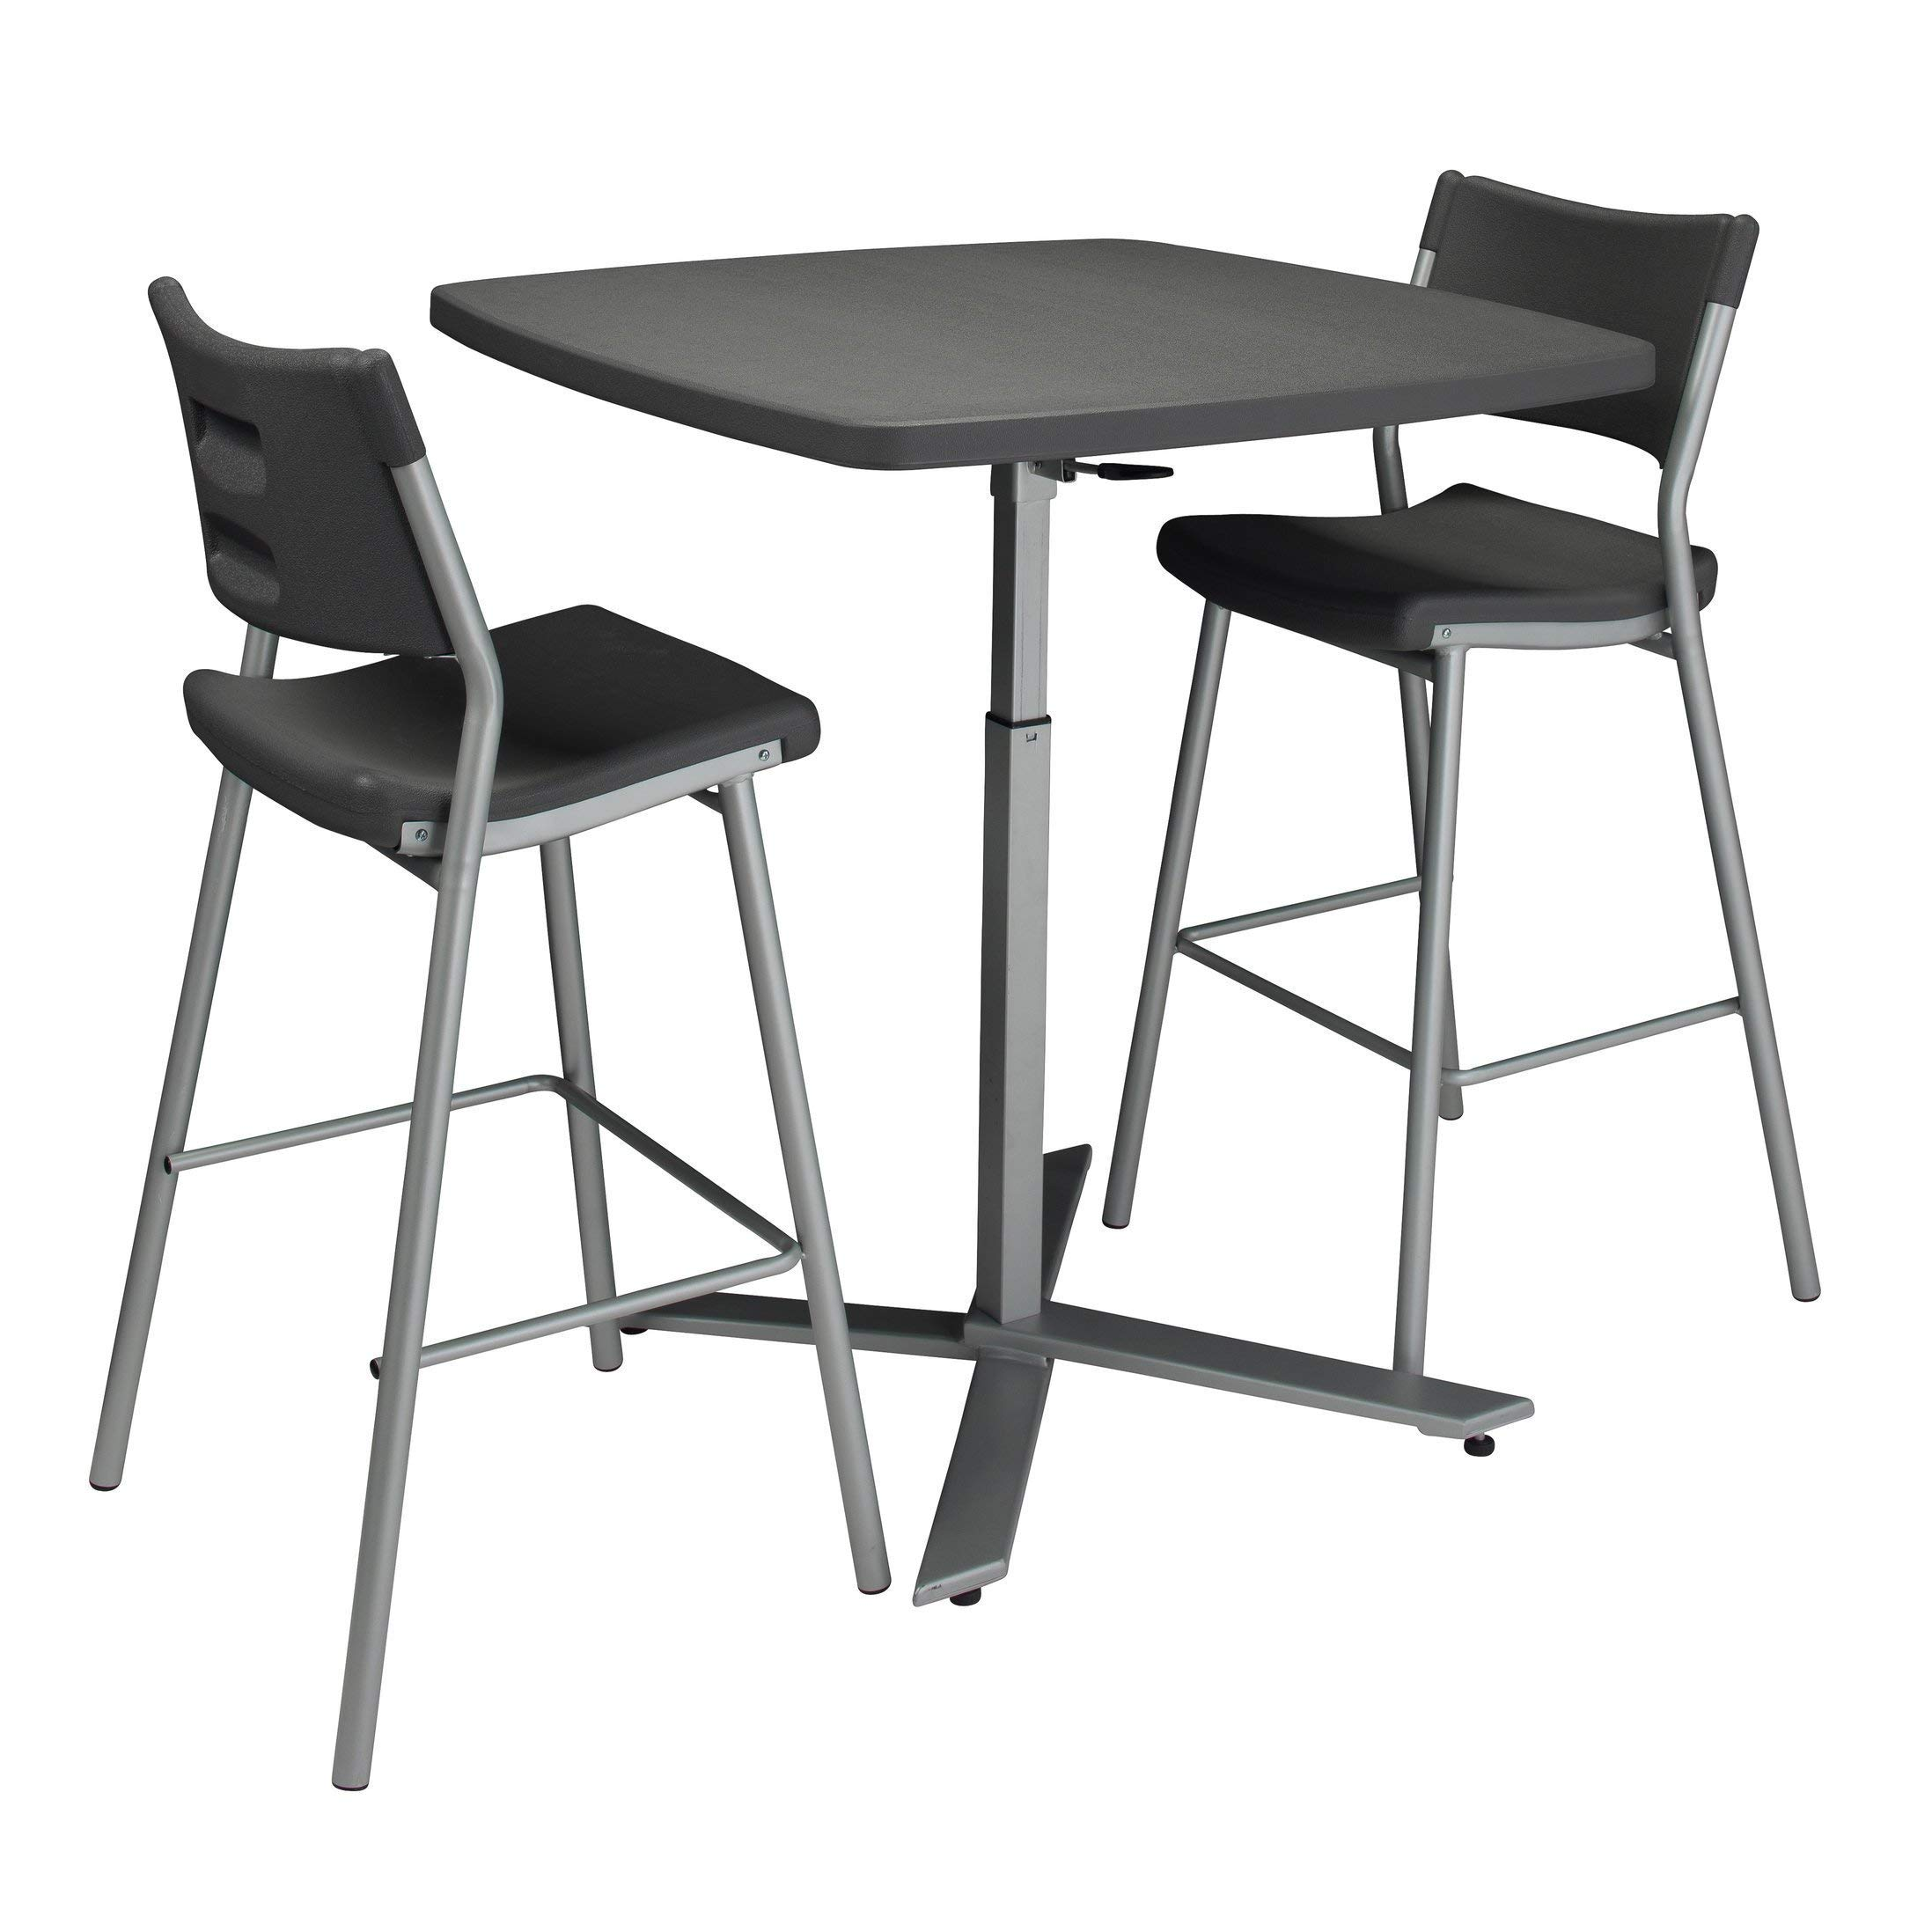 National Public Seating NPS Cafe Time Table and 4 Stools Set